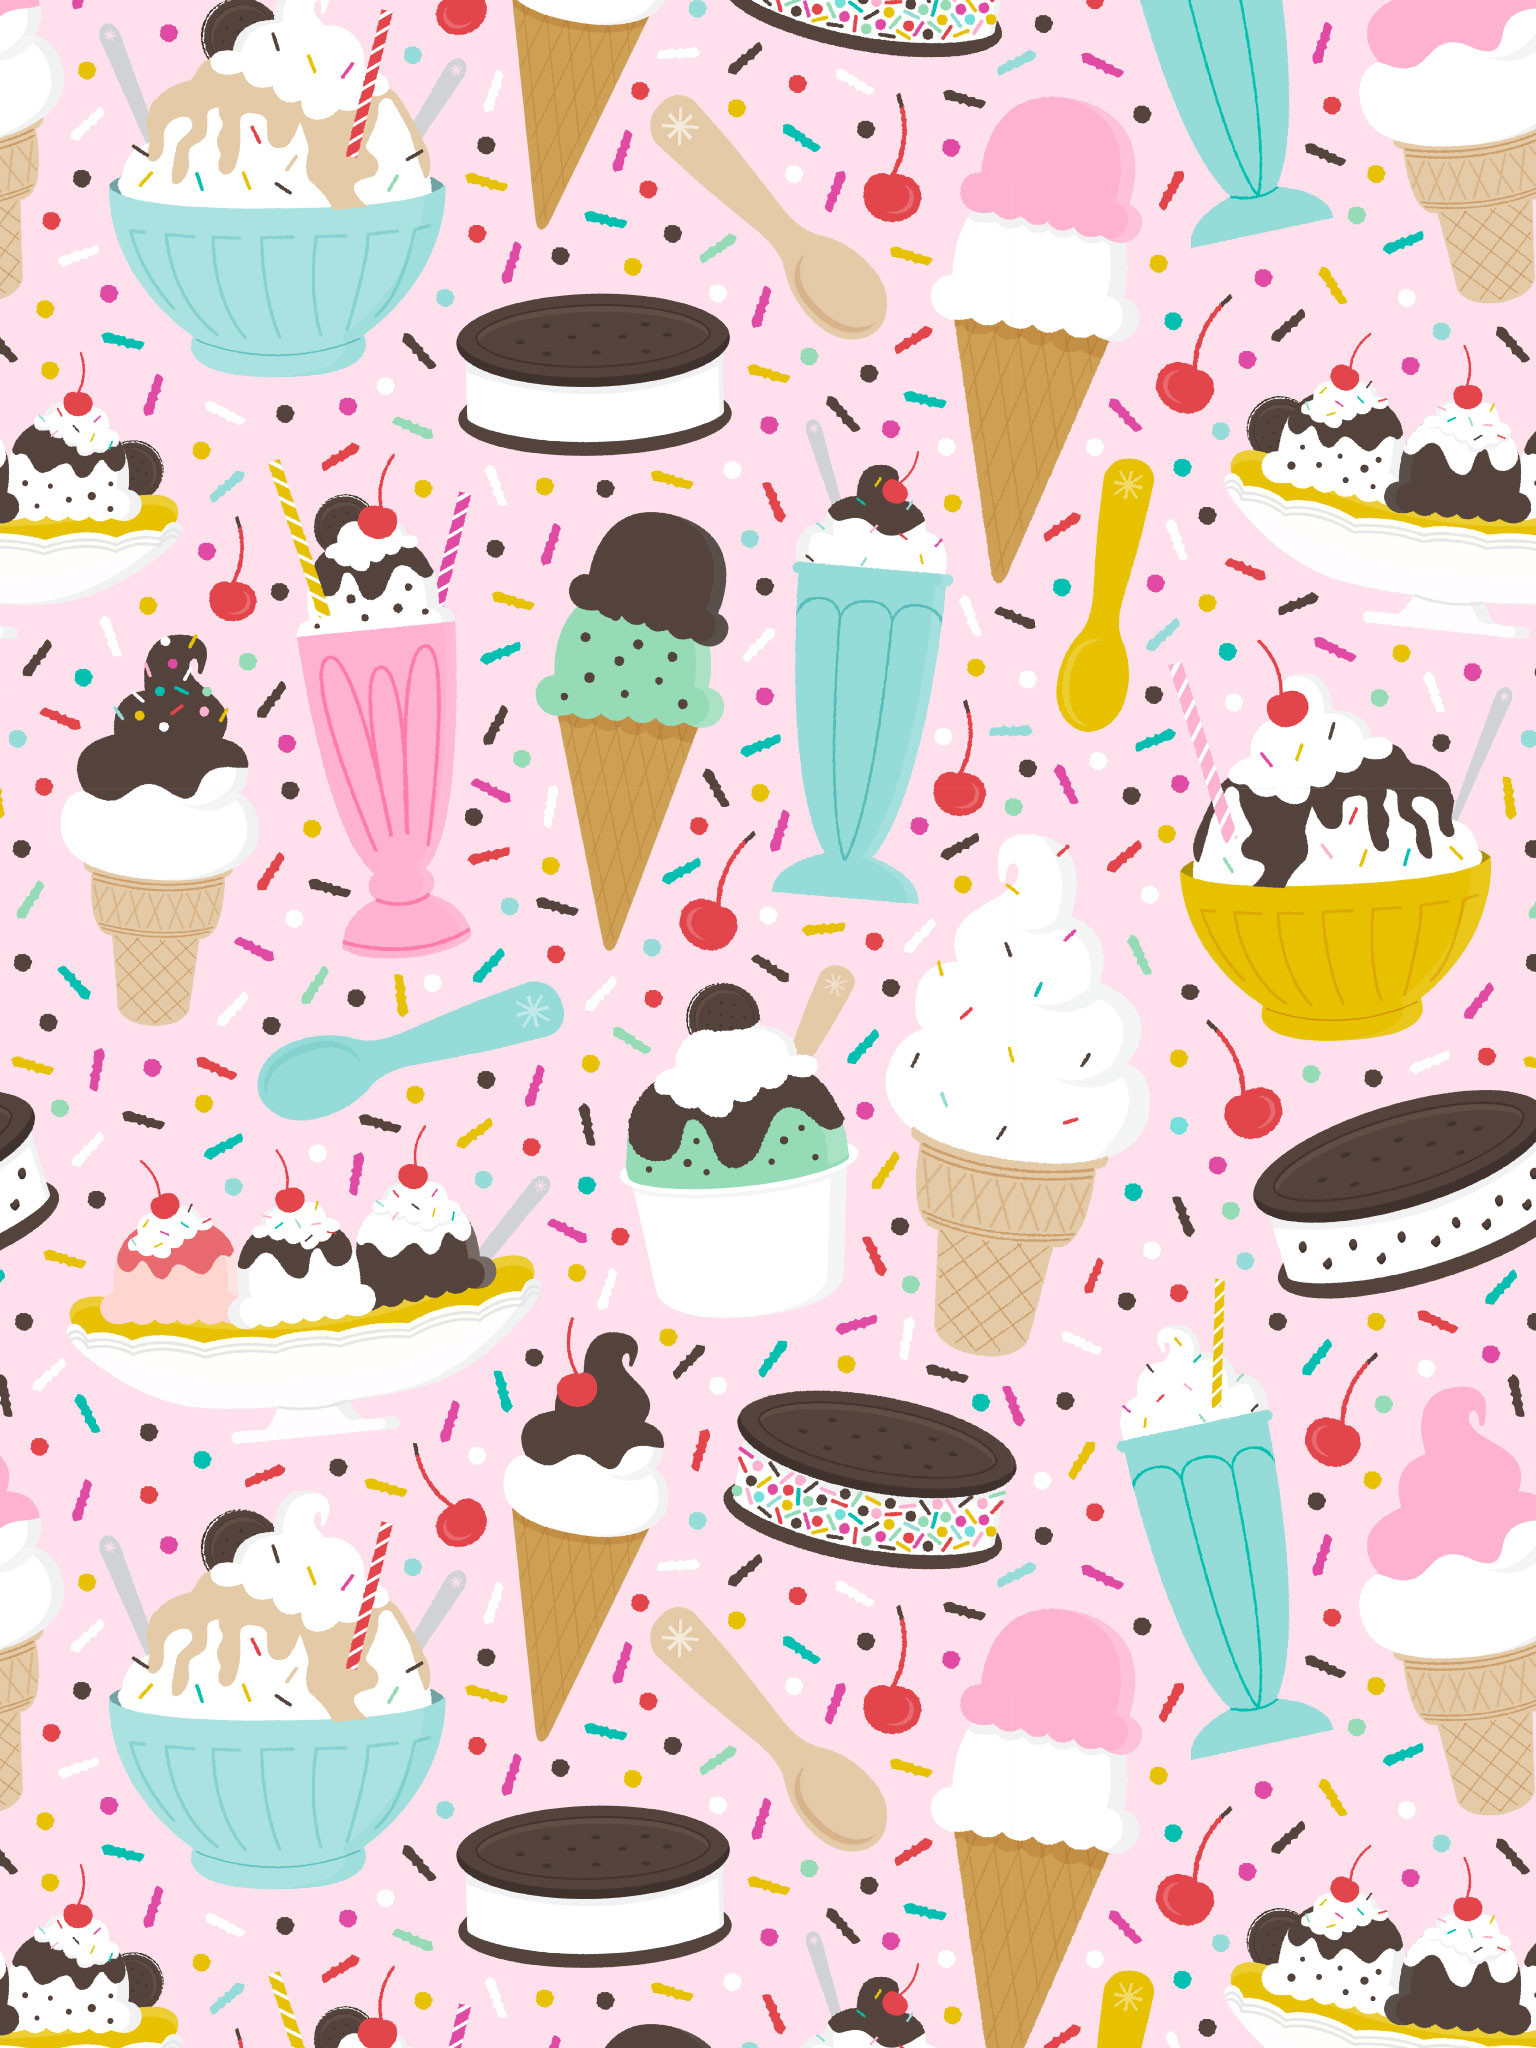 1536x2048 Milkshake Shop, Iphone Wallpaper, Ice Cream, Cheer, Goodies, Screen, Funds